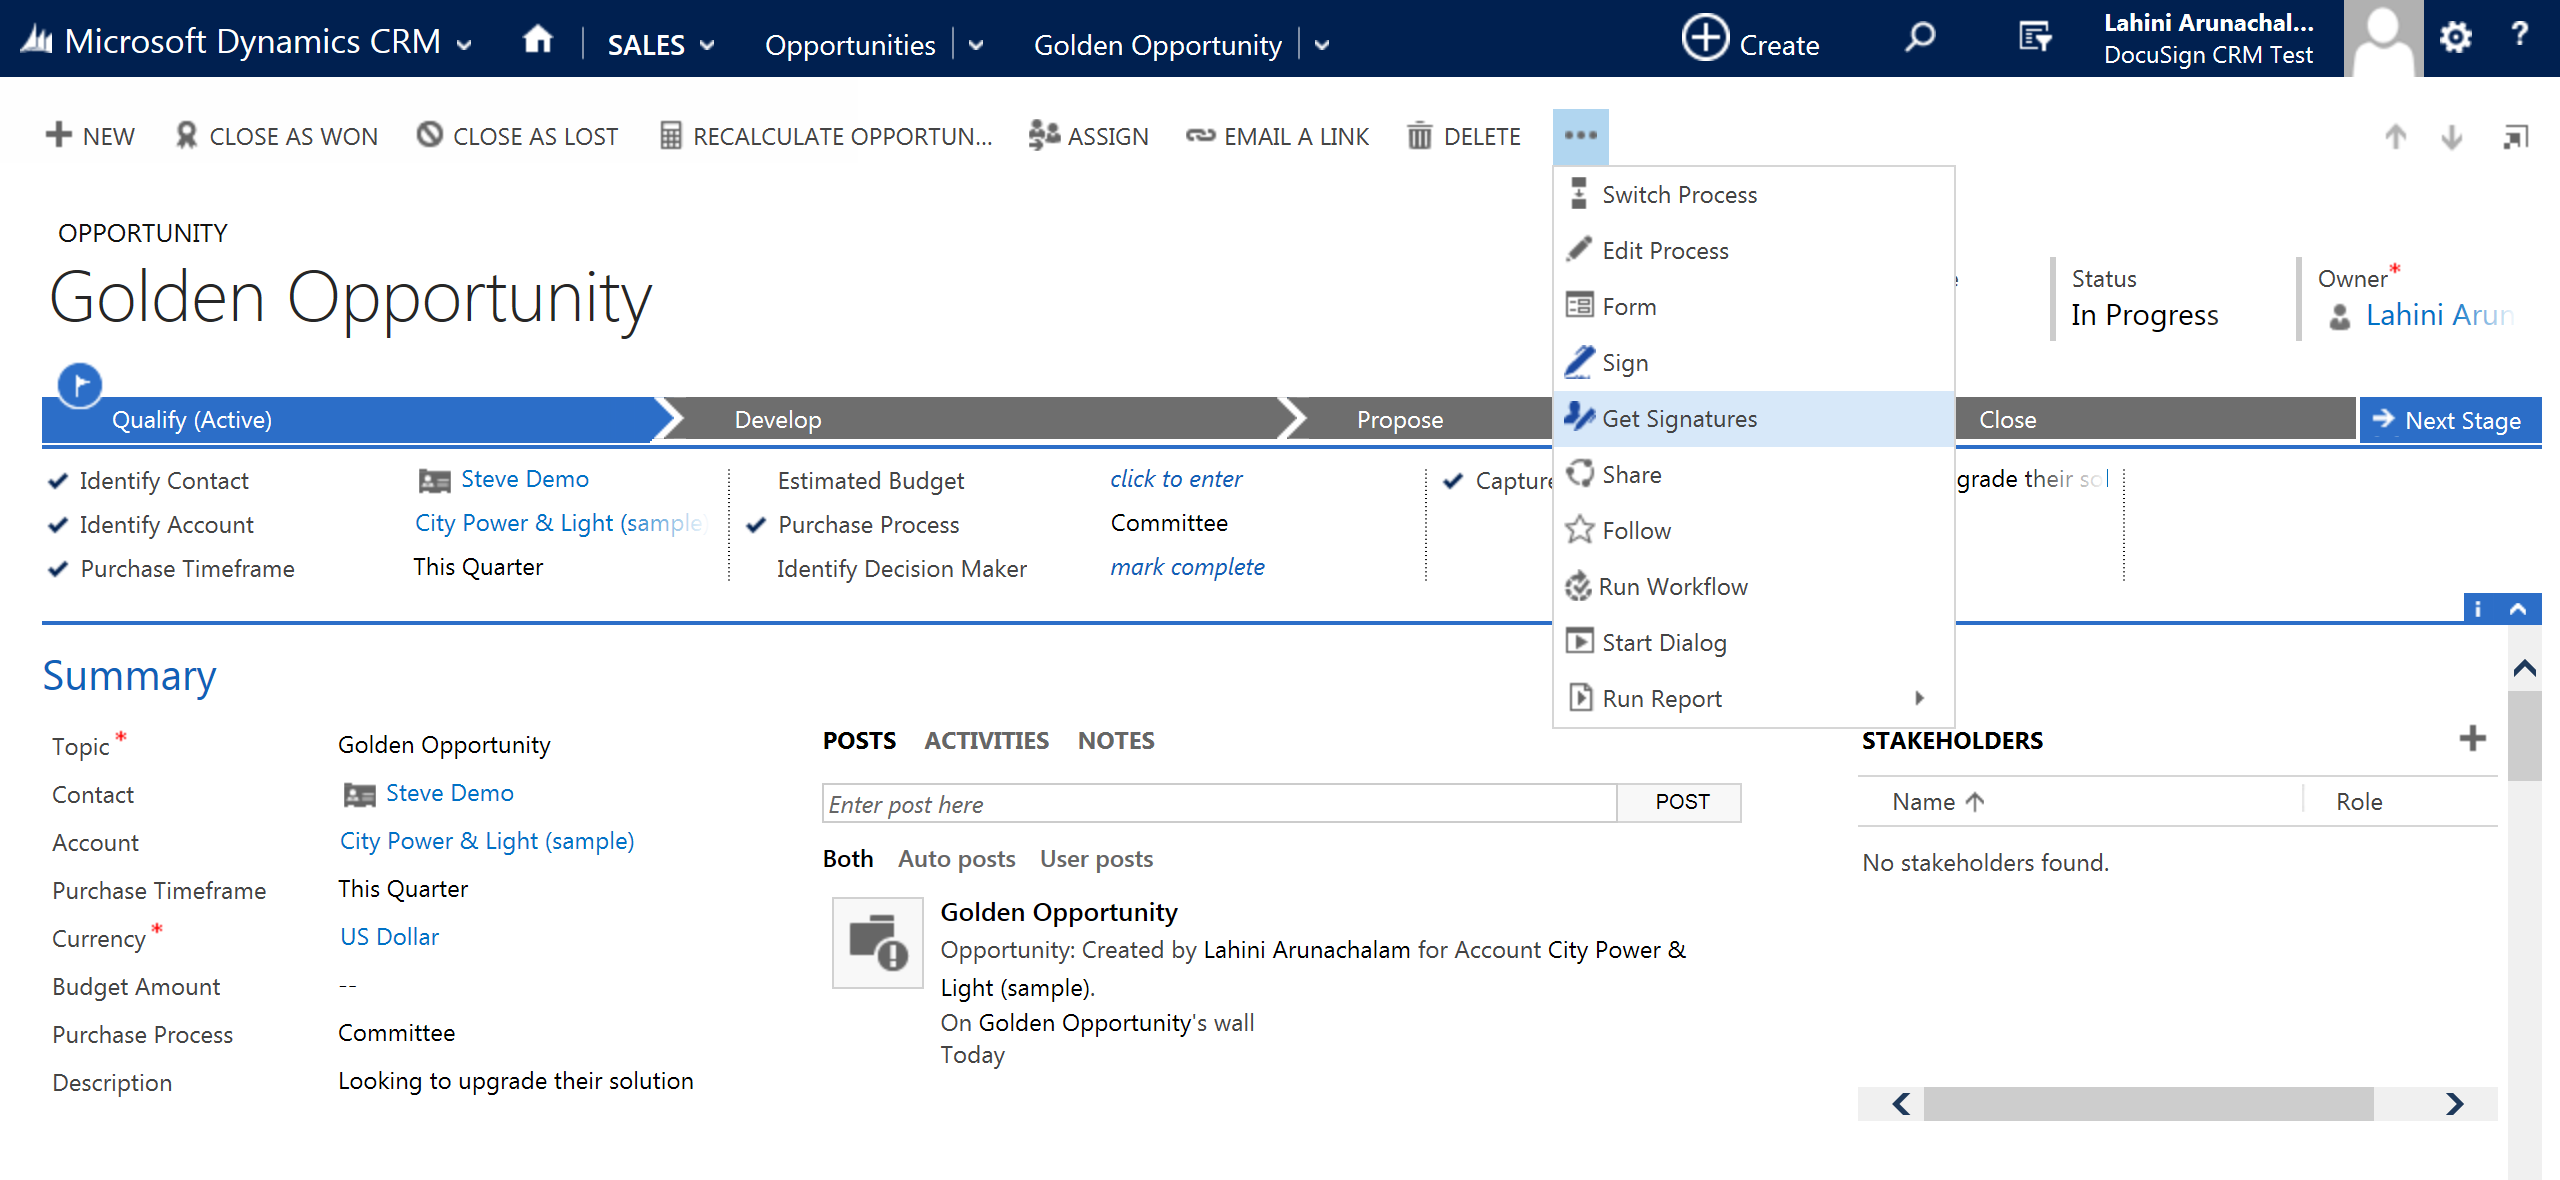 DocuSign for Dynamics 365 CRM | DocuSign